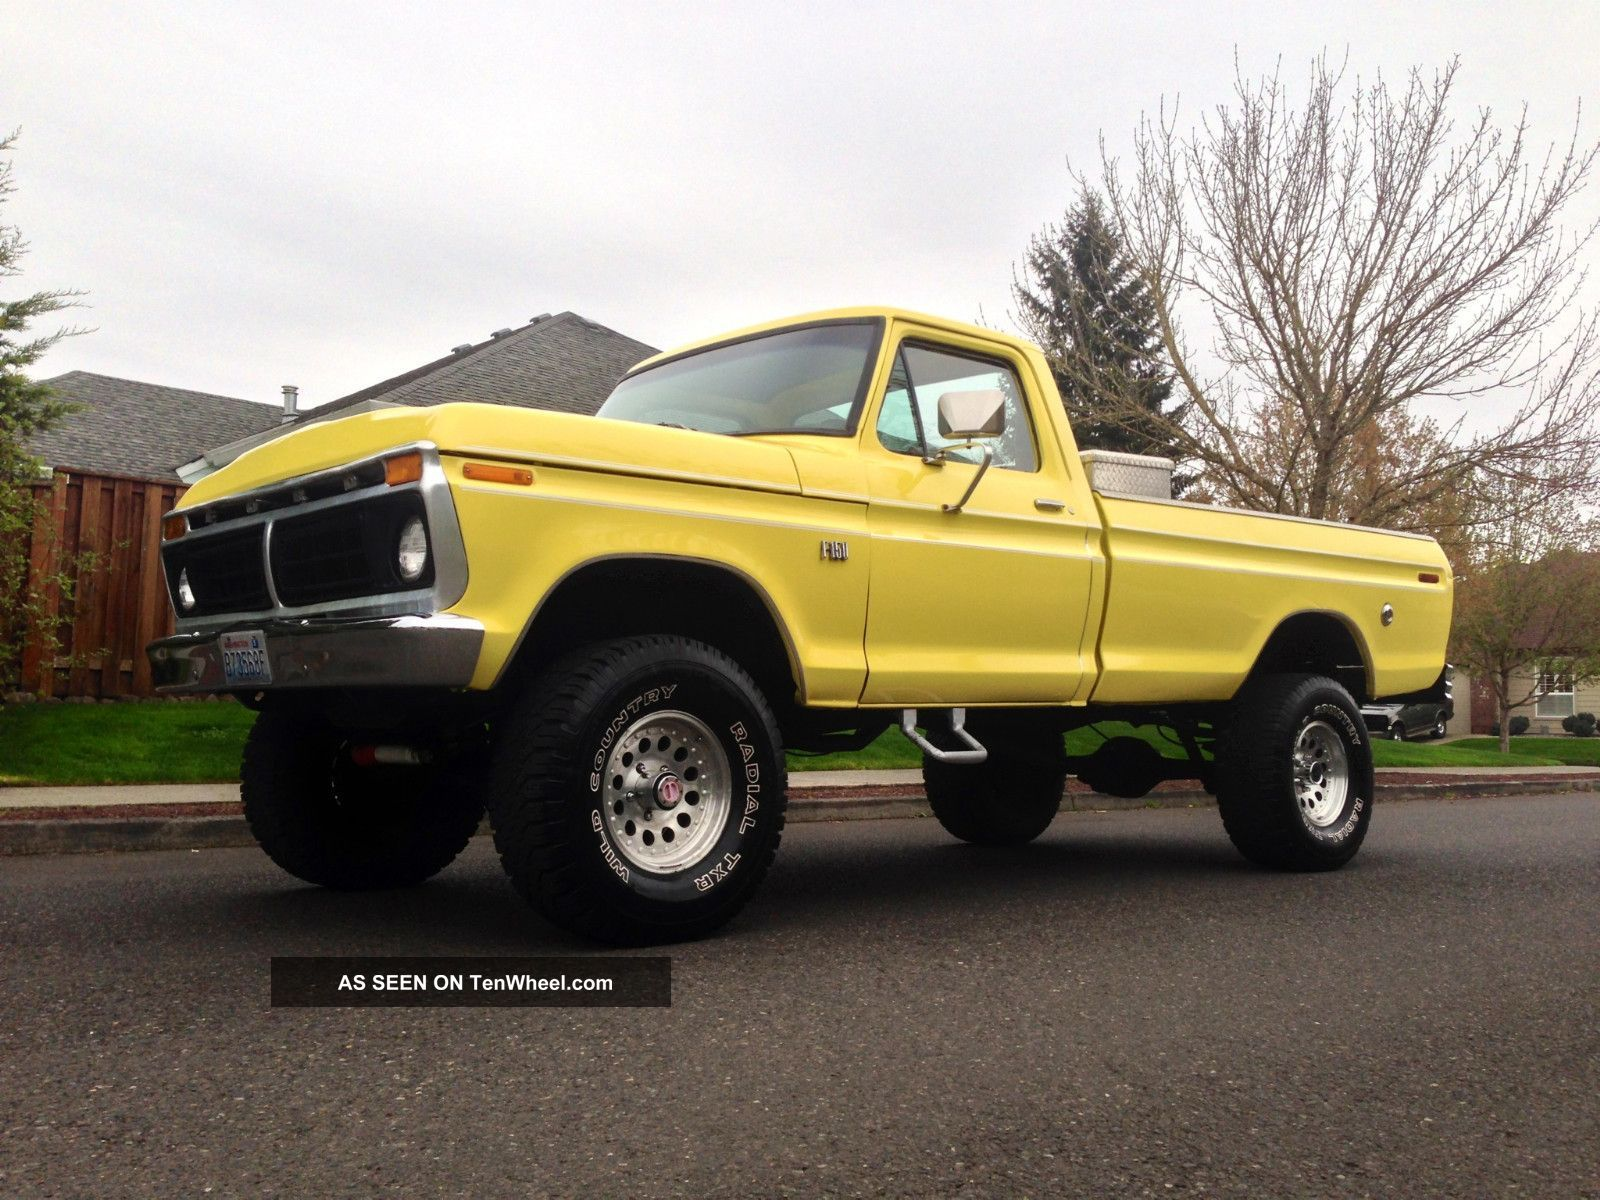 small resolution of 1976 ford f150 ranger 4x4 xlt longbed 1977 1975 1978 1974 f 150 photo